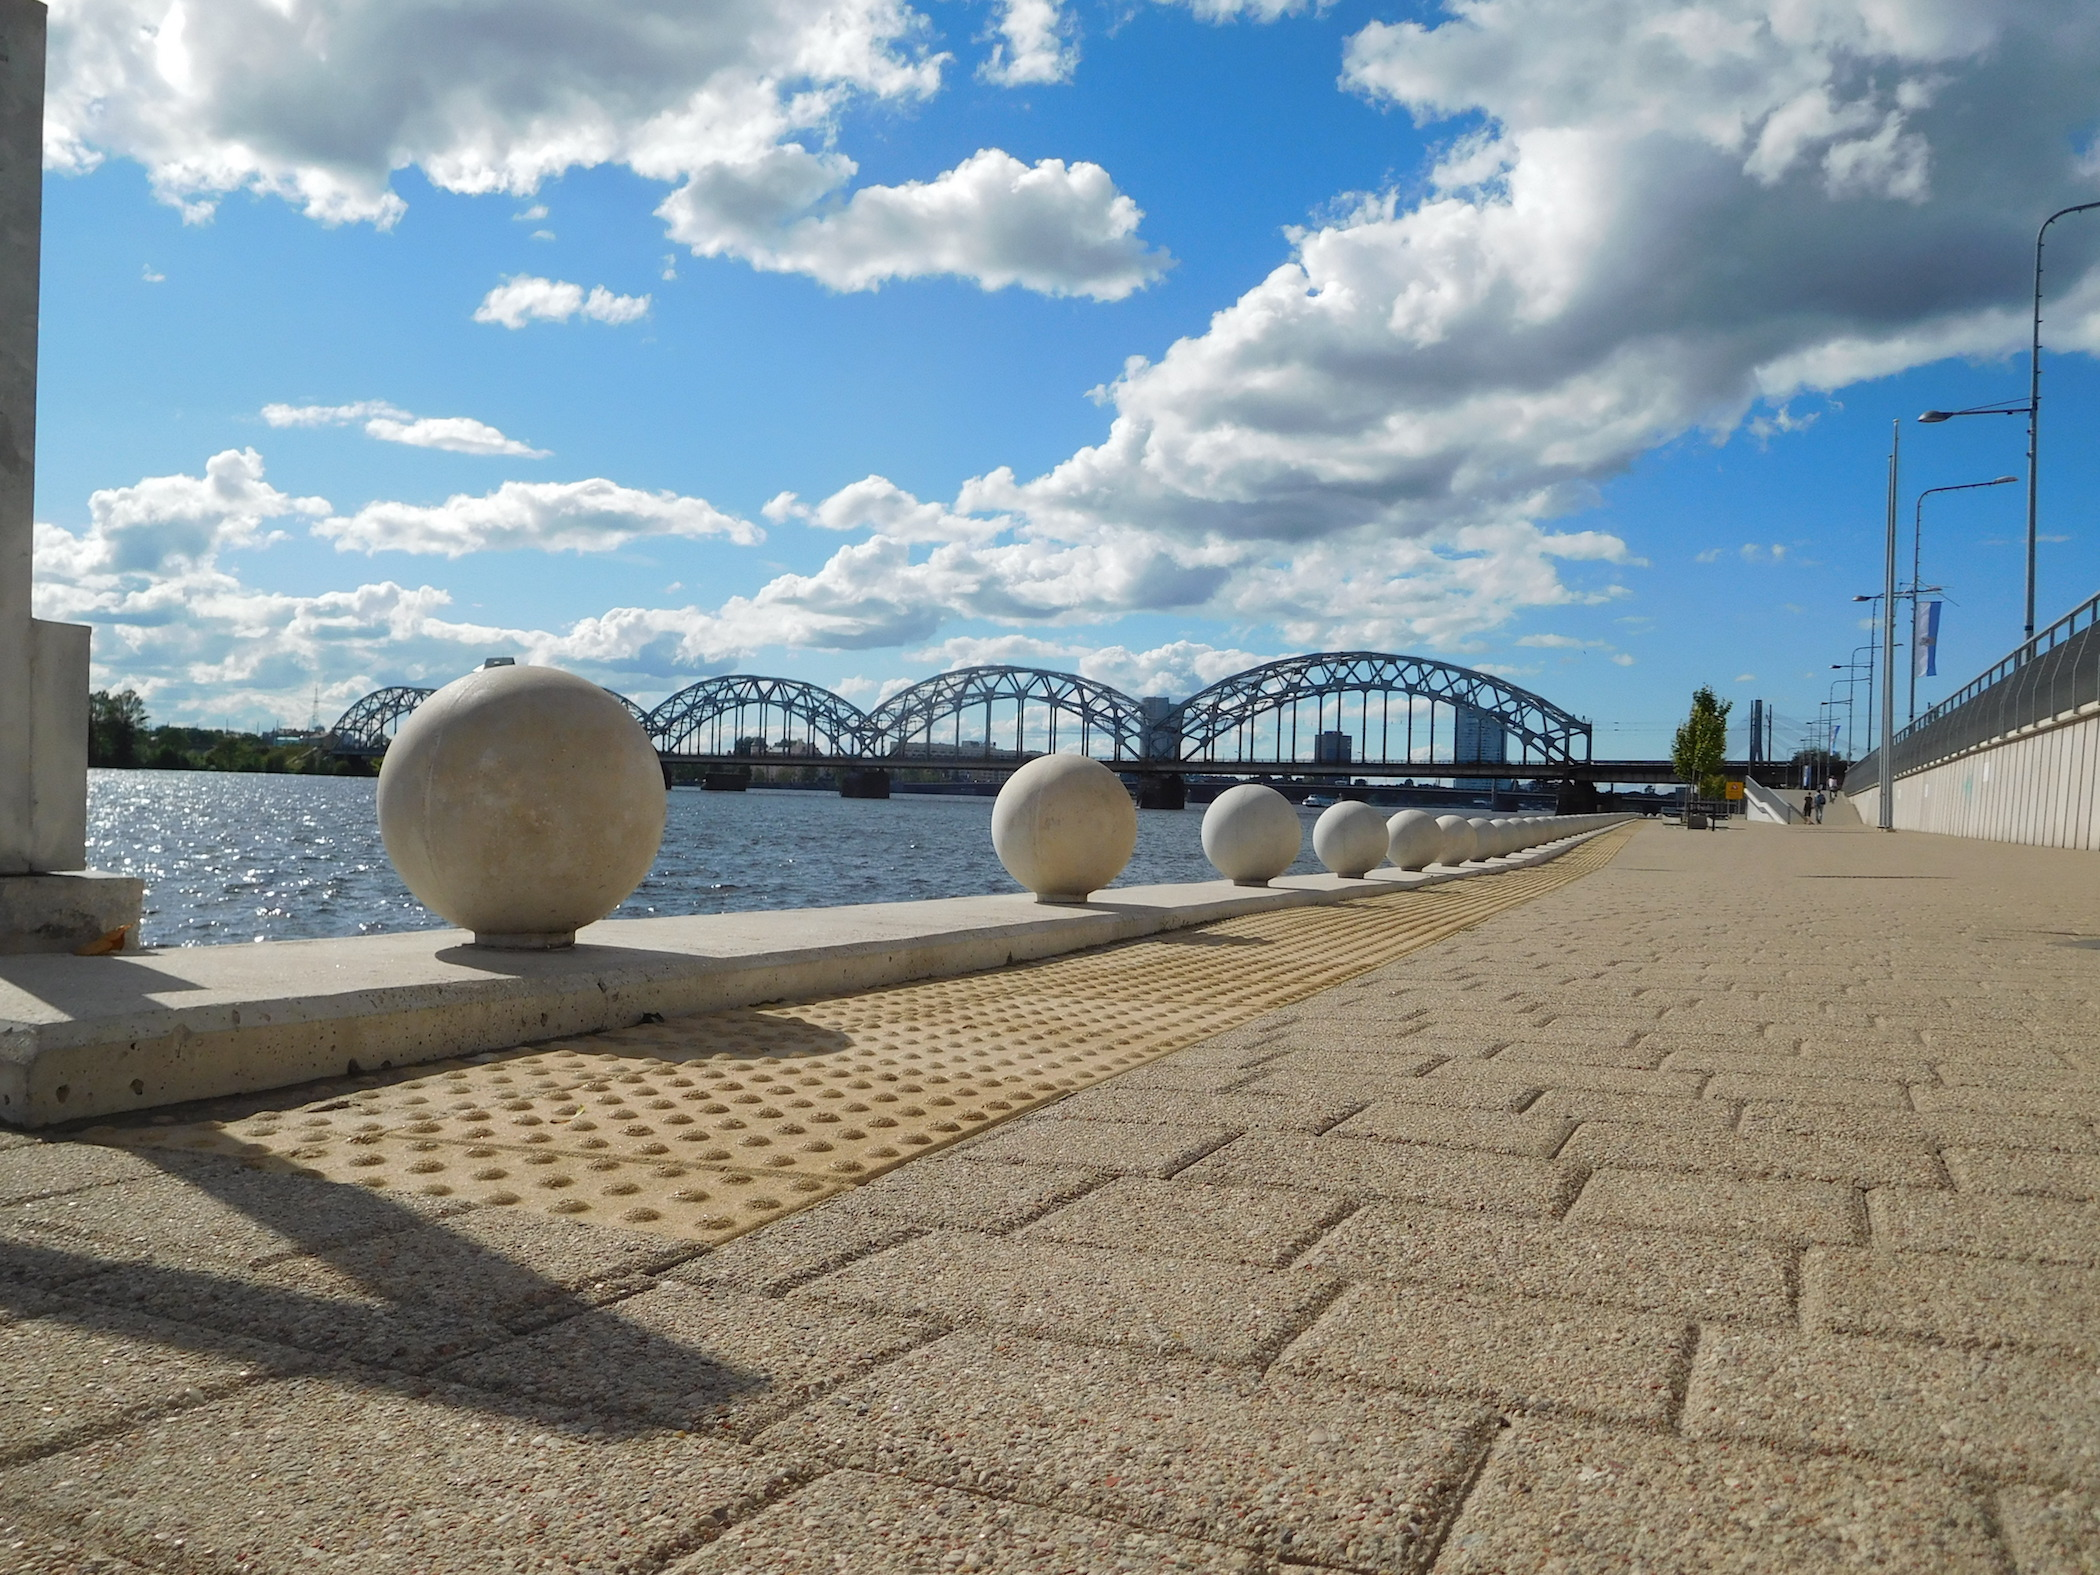 Enjoy the landscape of Daugava promenade